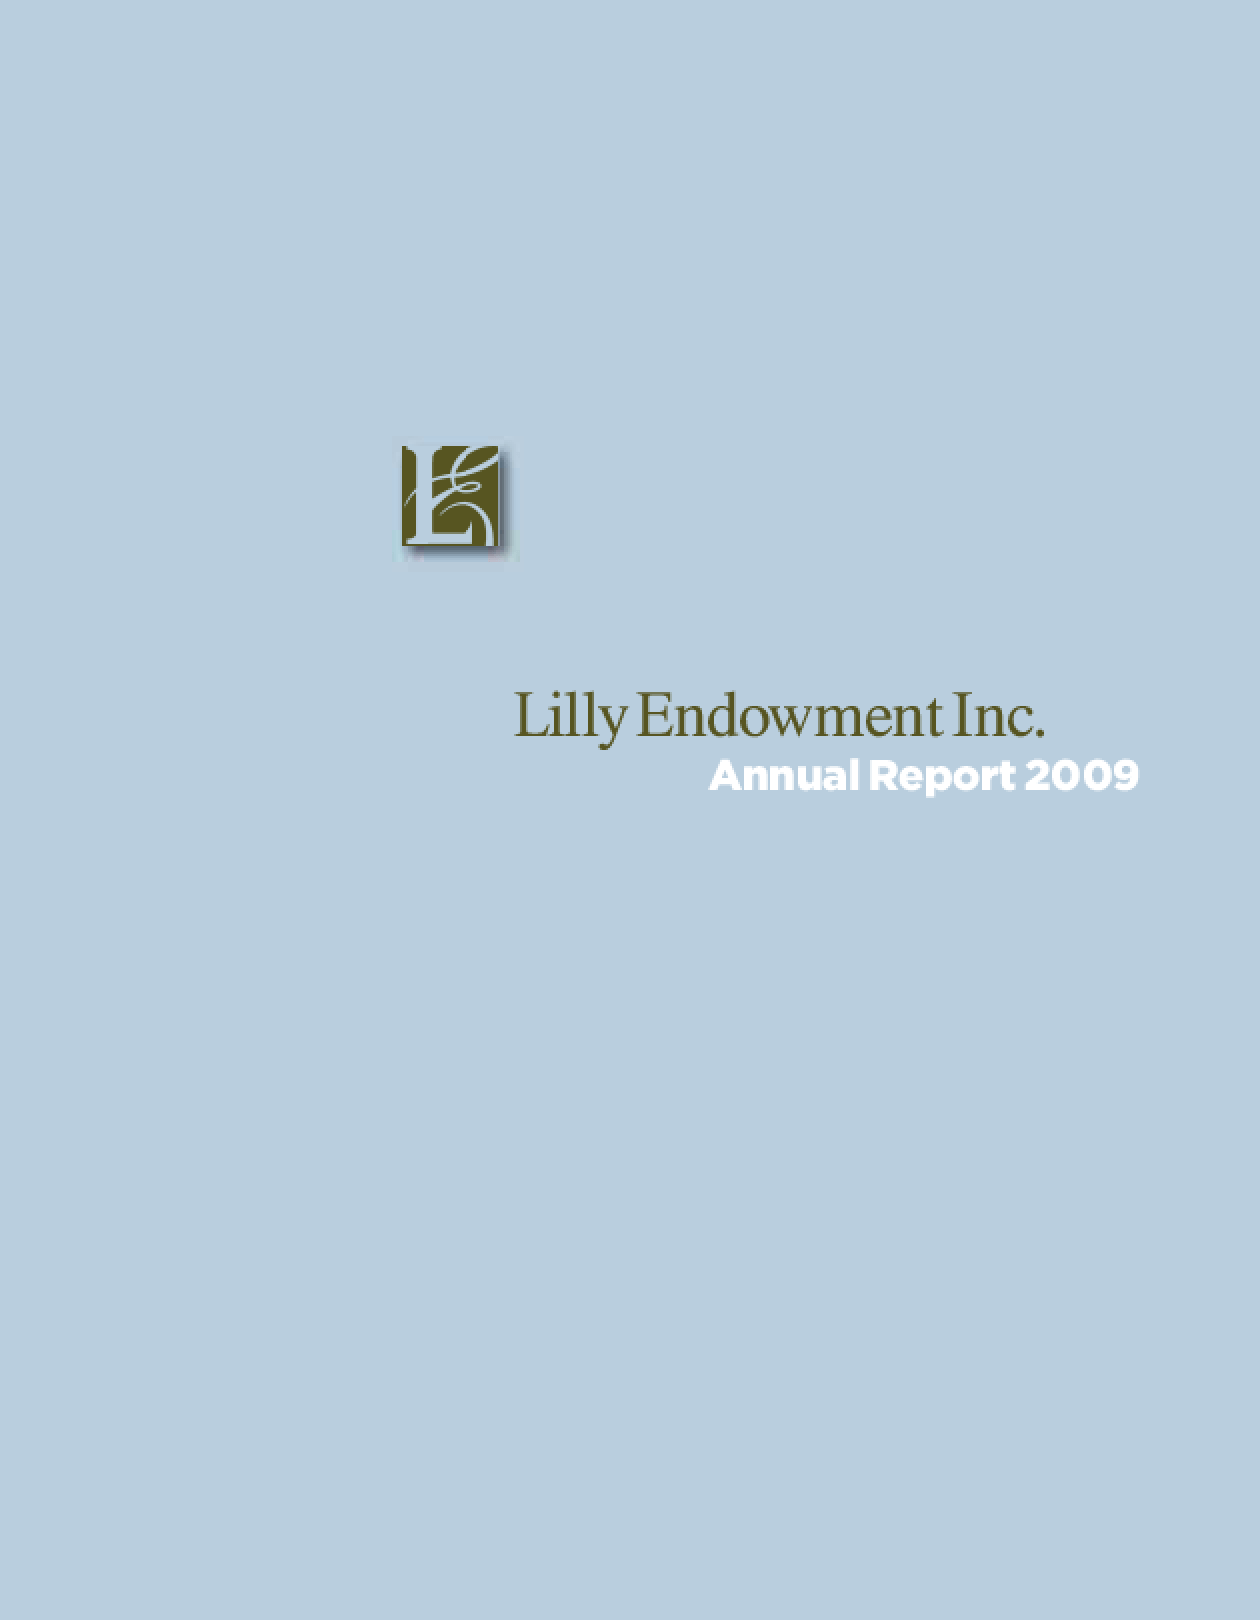 Lilly Endowment, Inc. - 2009 Annual Report